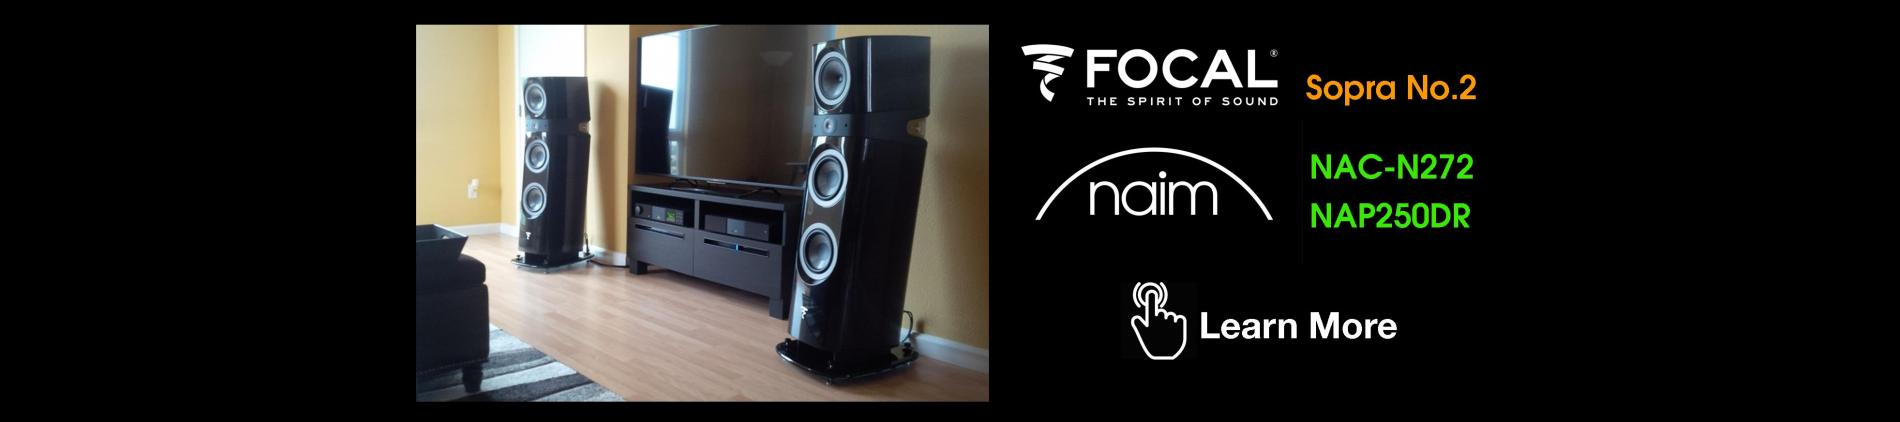 Naim Audio NAC-N272, NAP250DR, Focal, Sopra No2, Sopra, Naim Classic Series, High End Audio Victoria,BC, Stereos Victoria, BC, Tidal Music, Streaming Audio